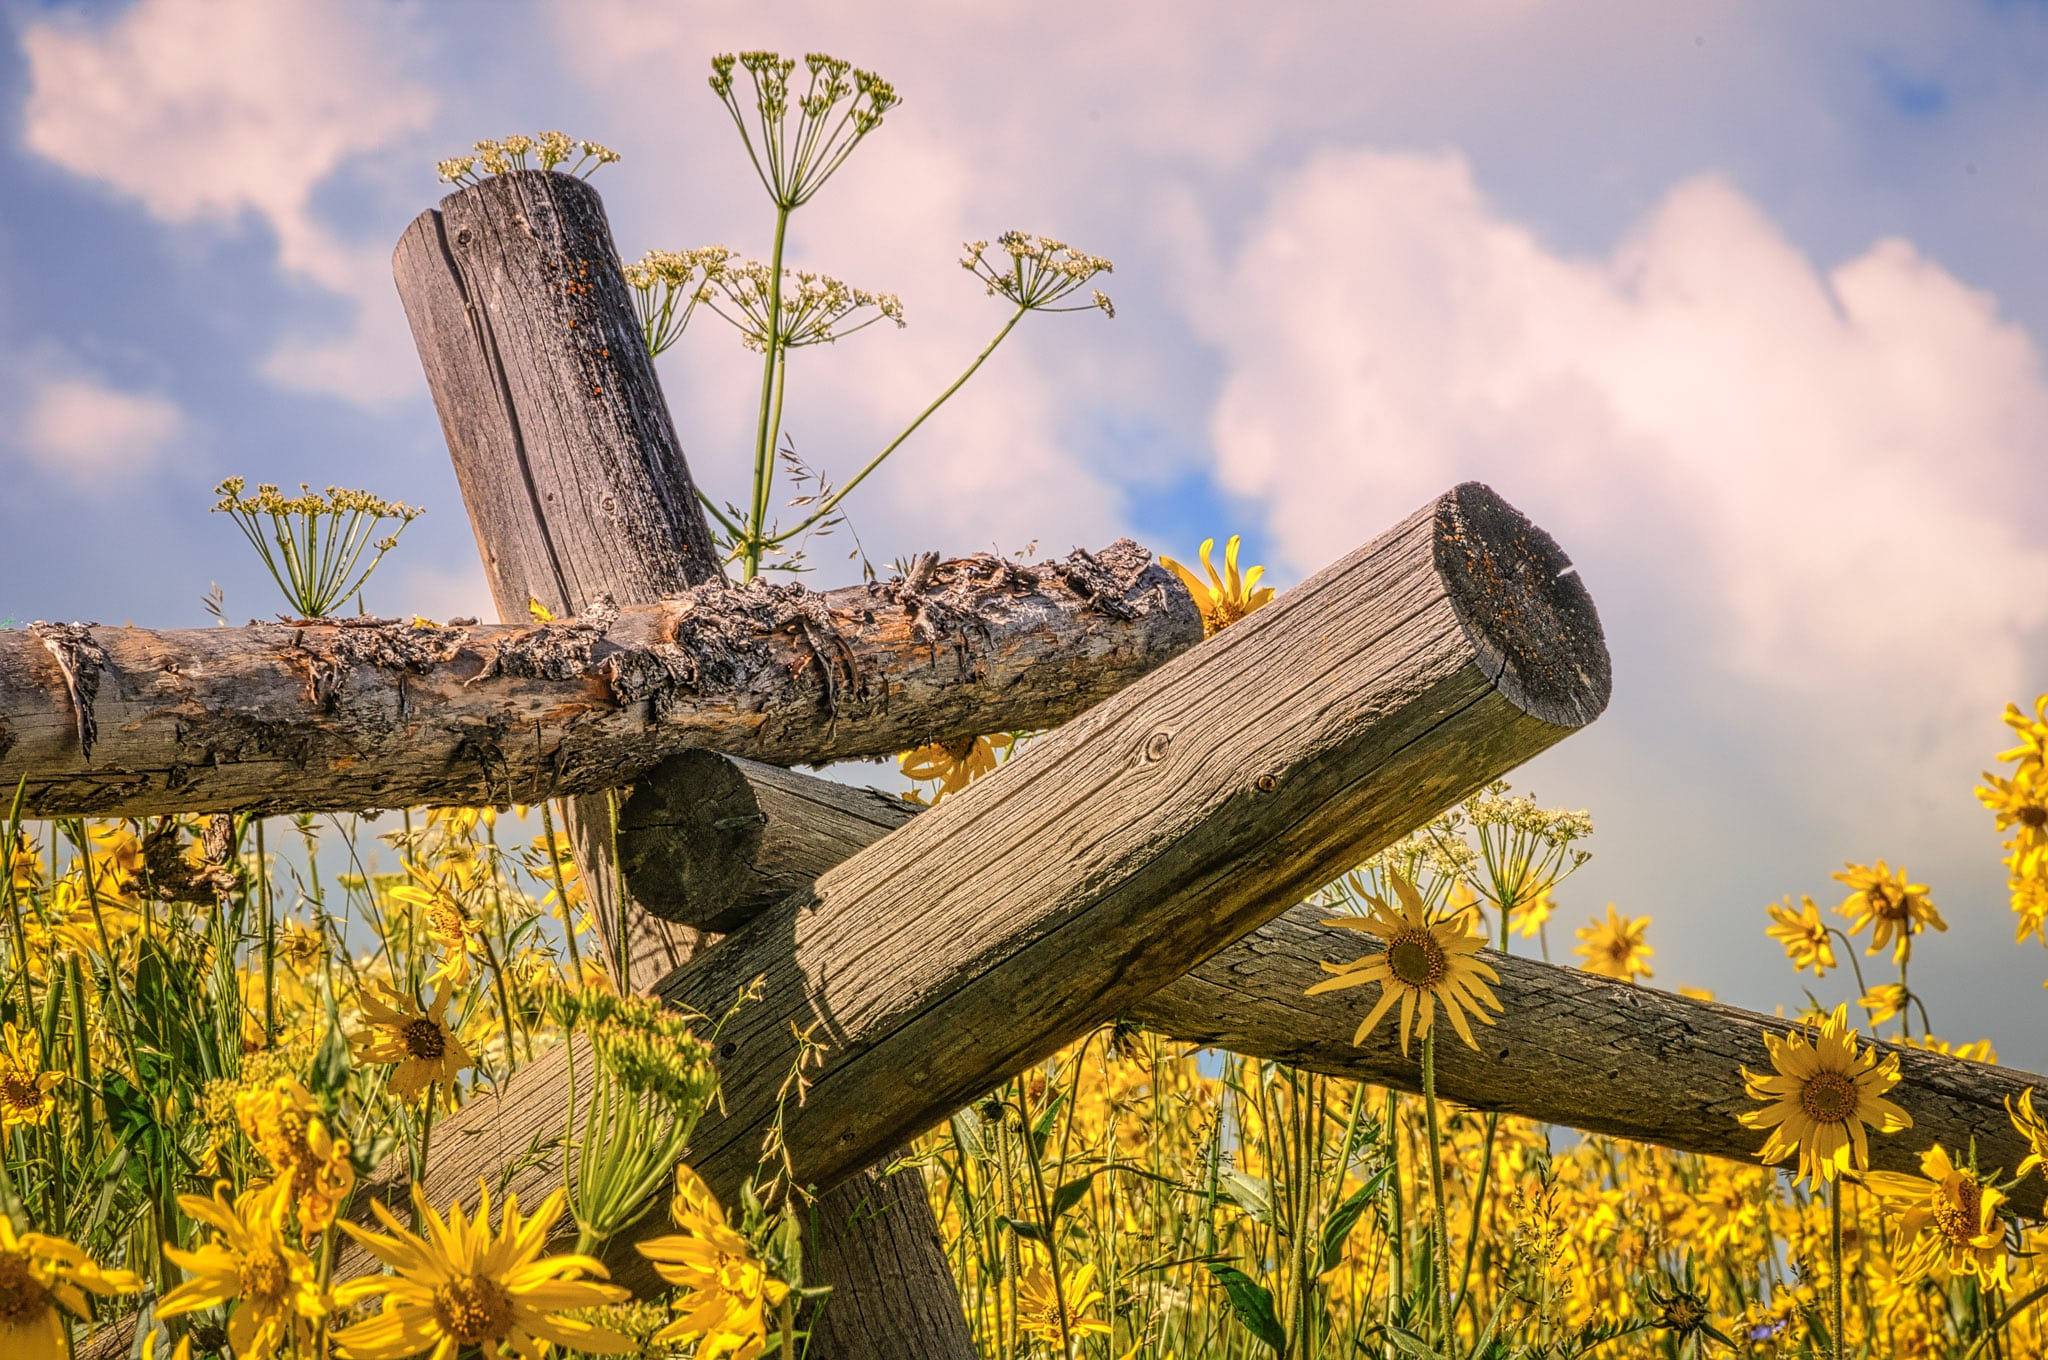 A rail fence among Golden Asters, Mule's Ears, sunflowers, and fennel along the Gothic Road north of Mt. Crested Butte, Colorado.